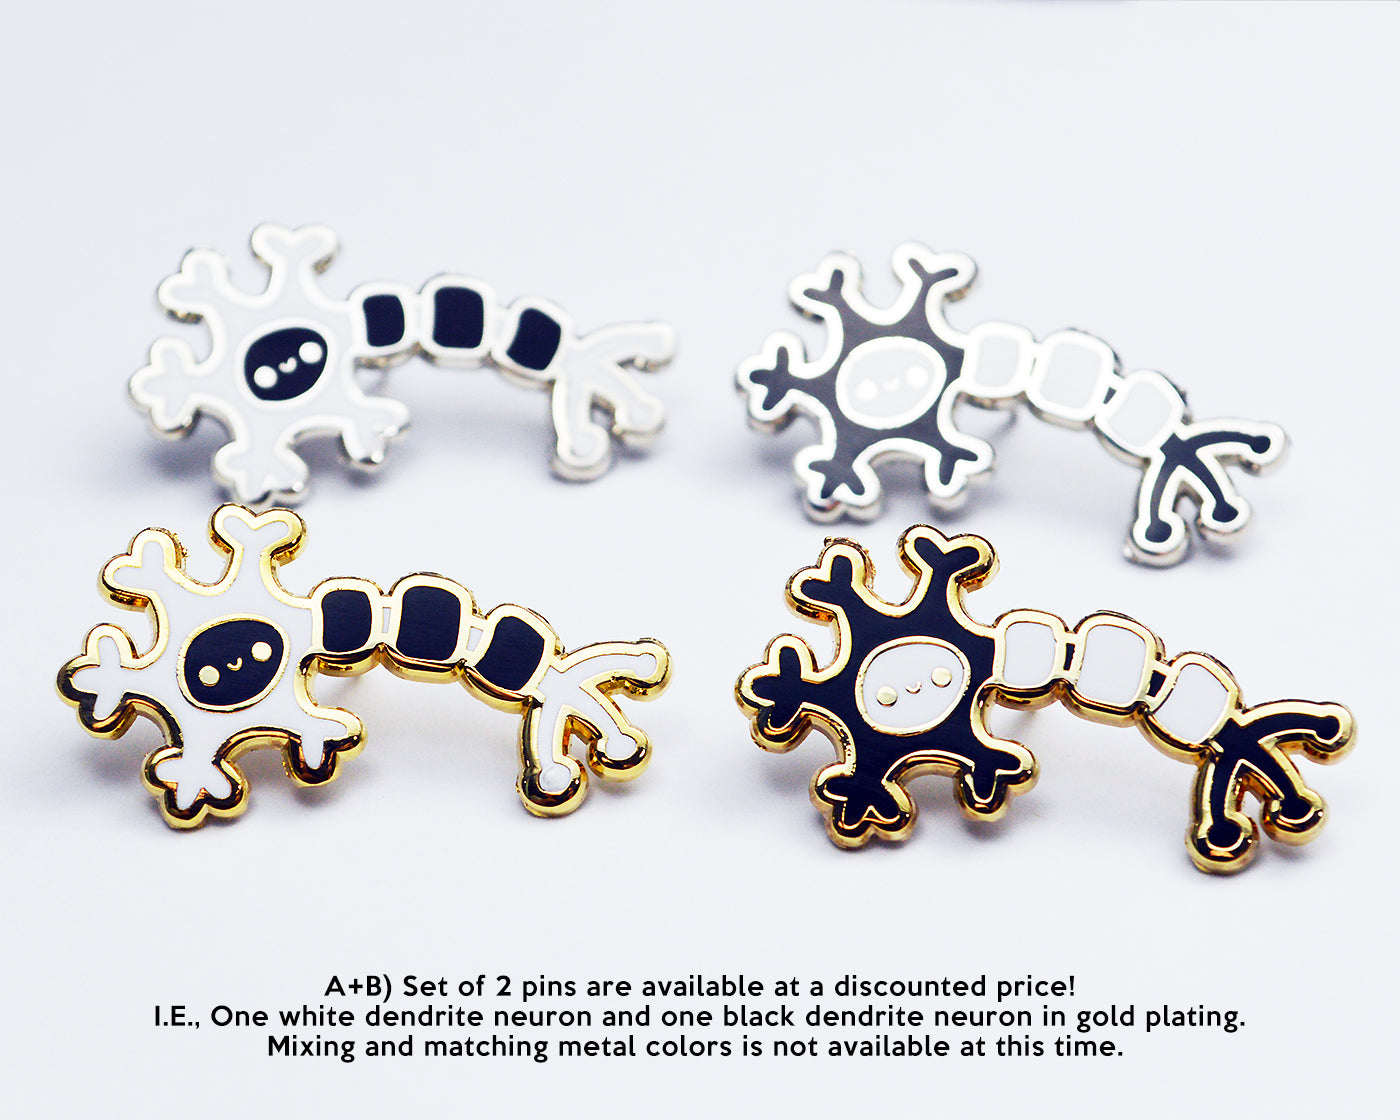 Medical Nerve Cell Brooch Pin,Personalized Neuron Tissue Molecular Gene Modeling Brooch Pin for Medical Scientist Gifts